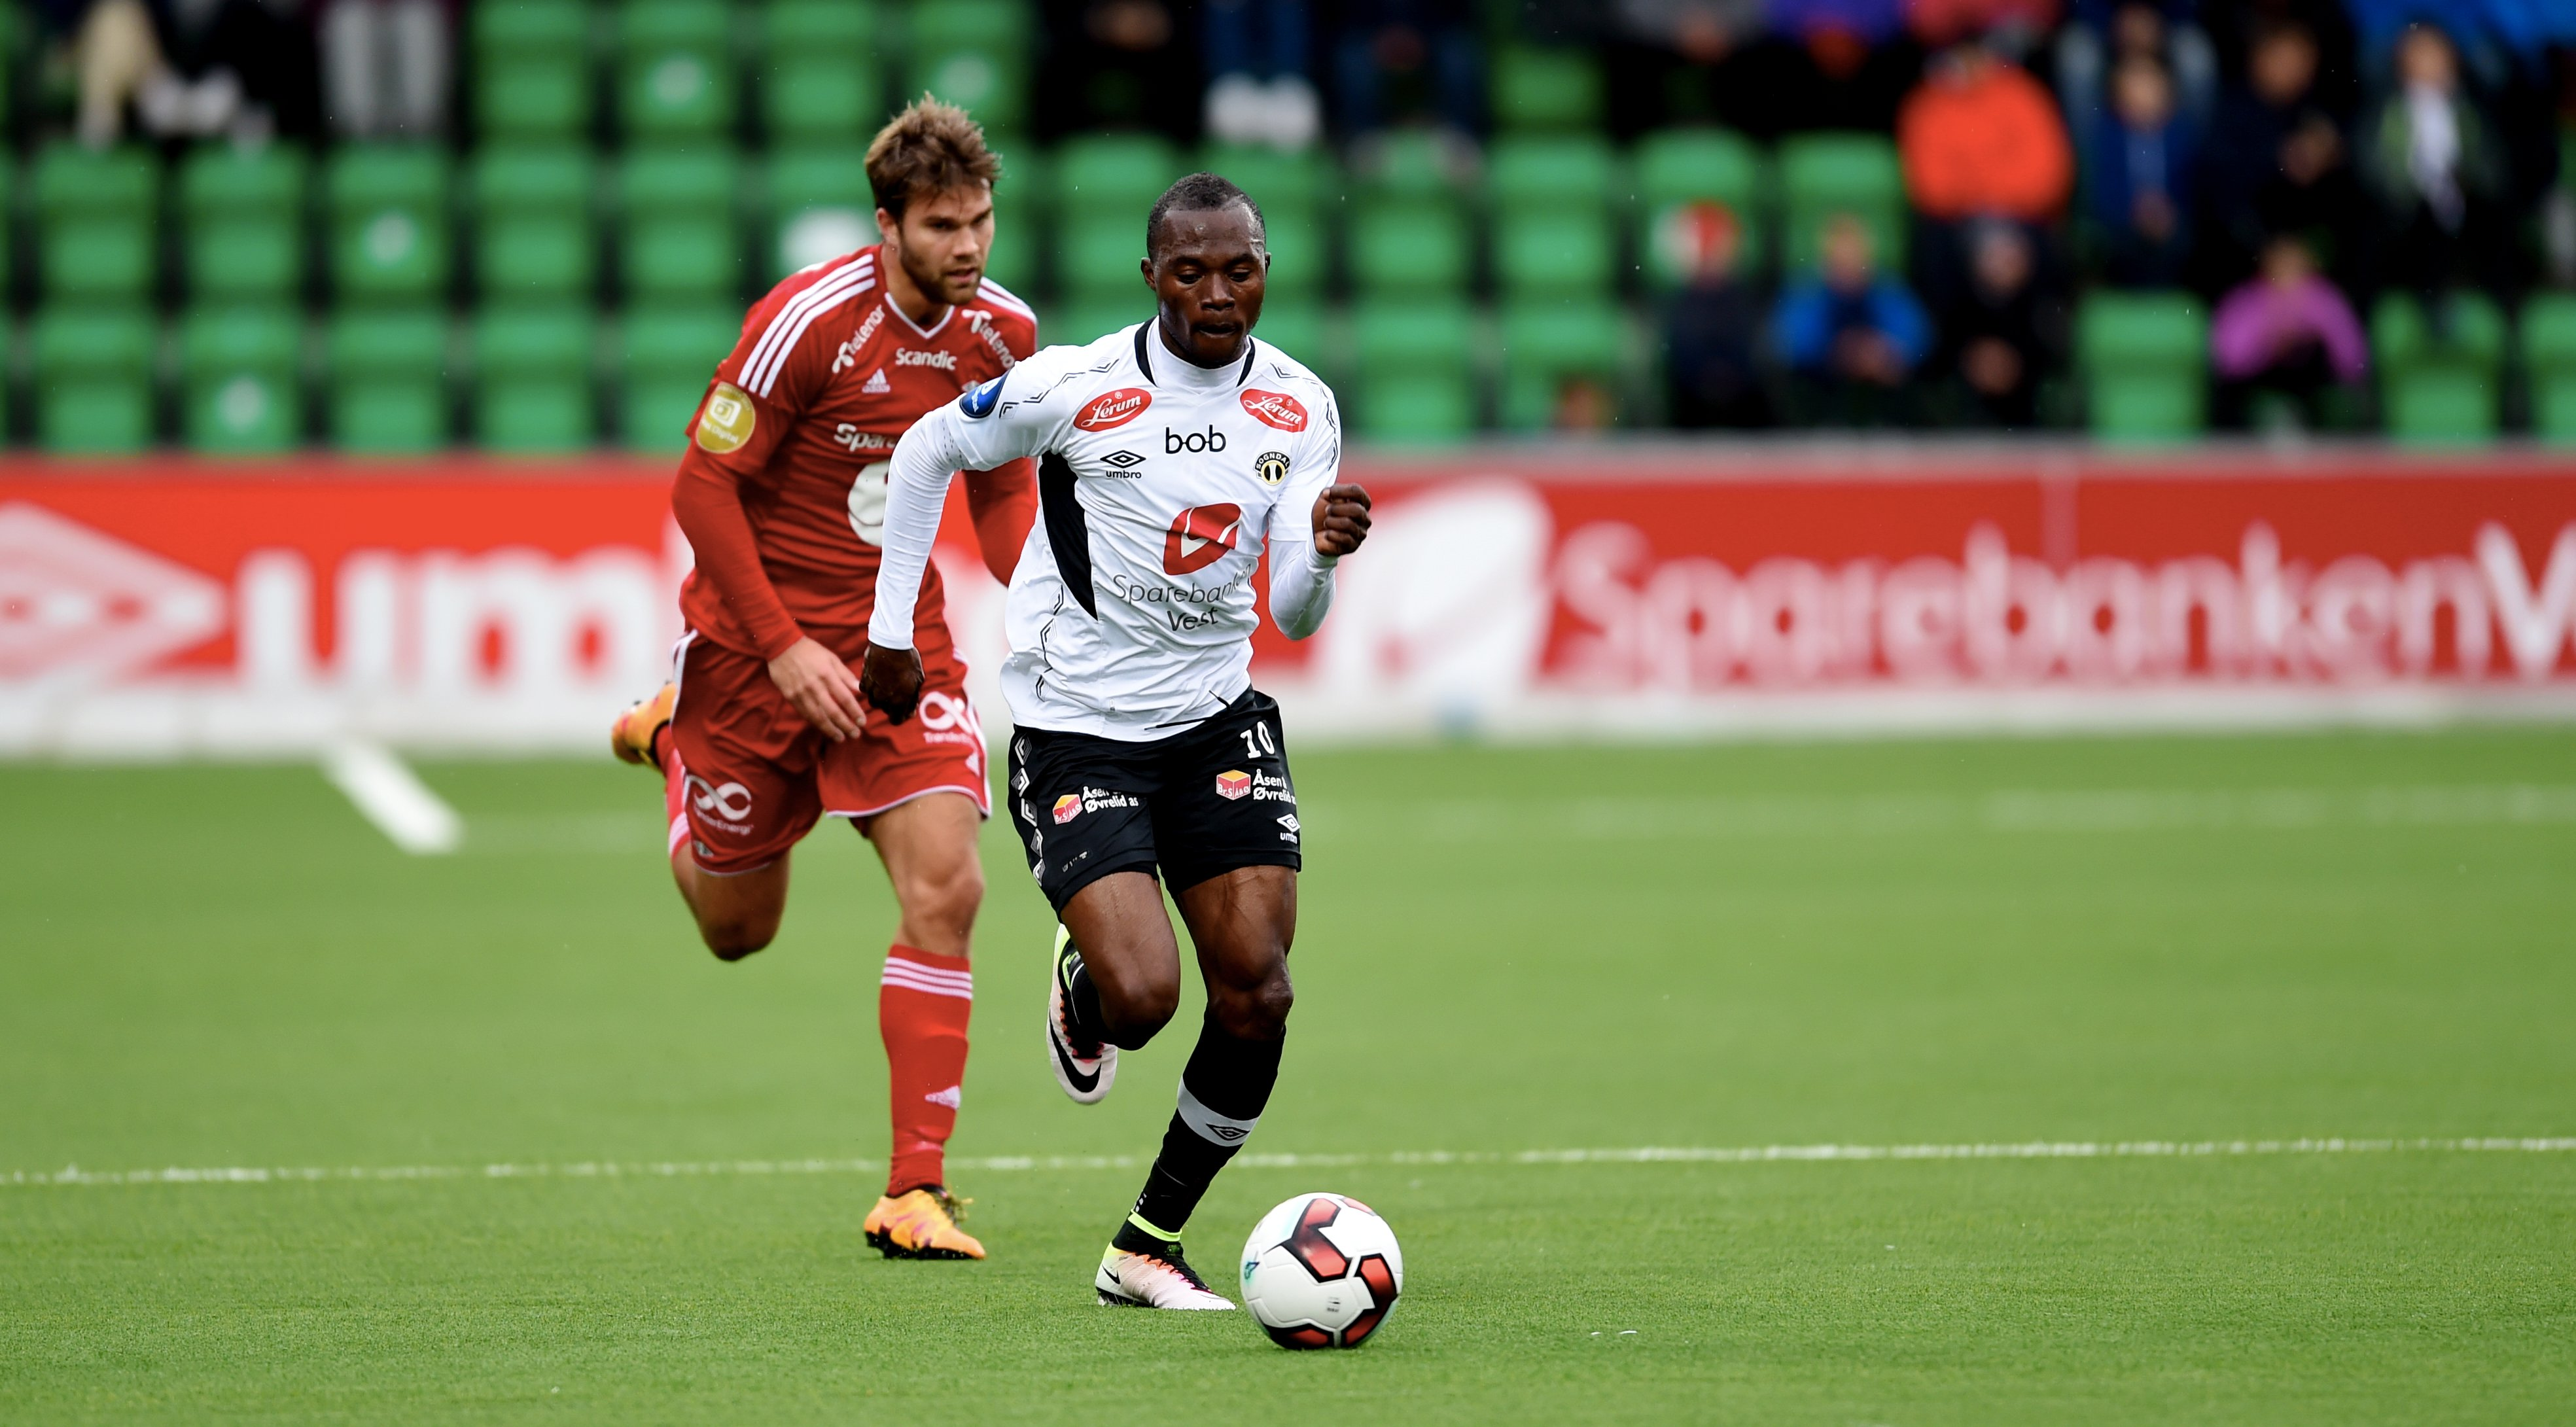 Gilbert Koomson scores and provides assist as Sogndal win in Norwegian top-flight